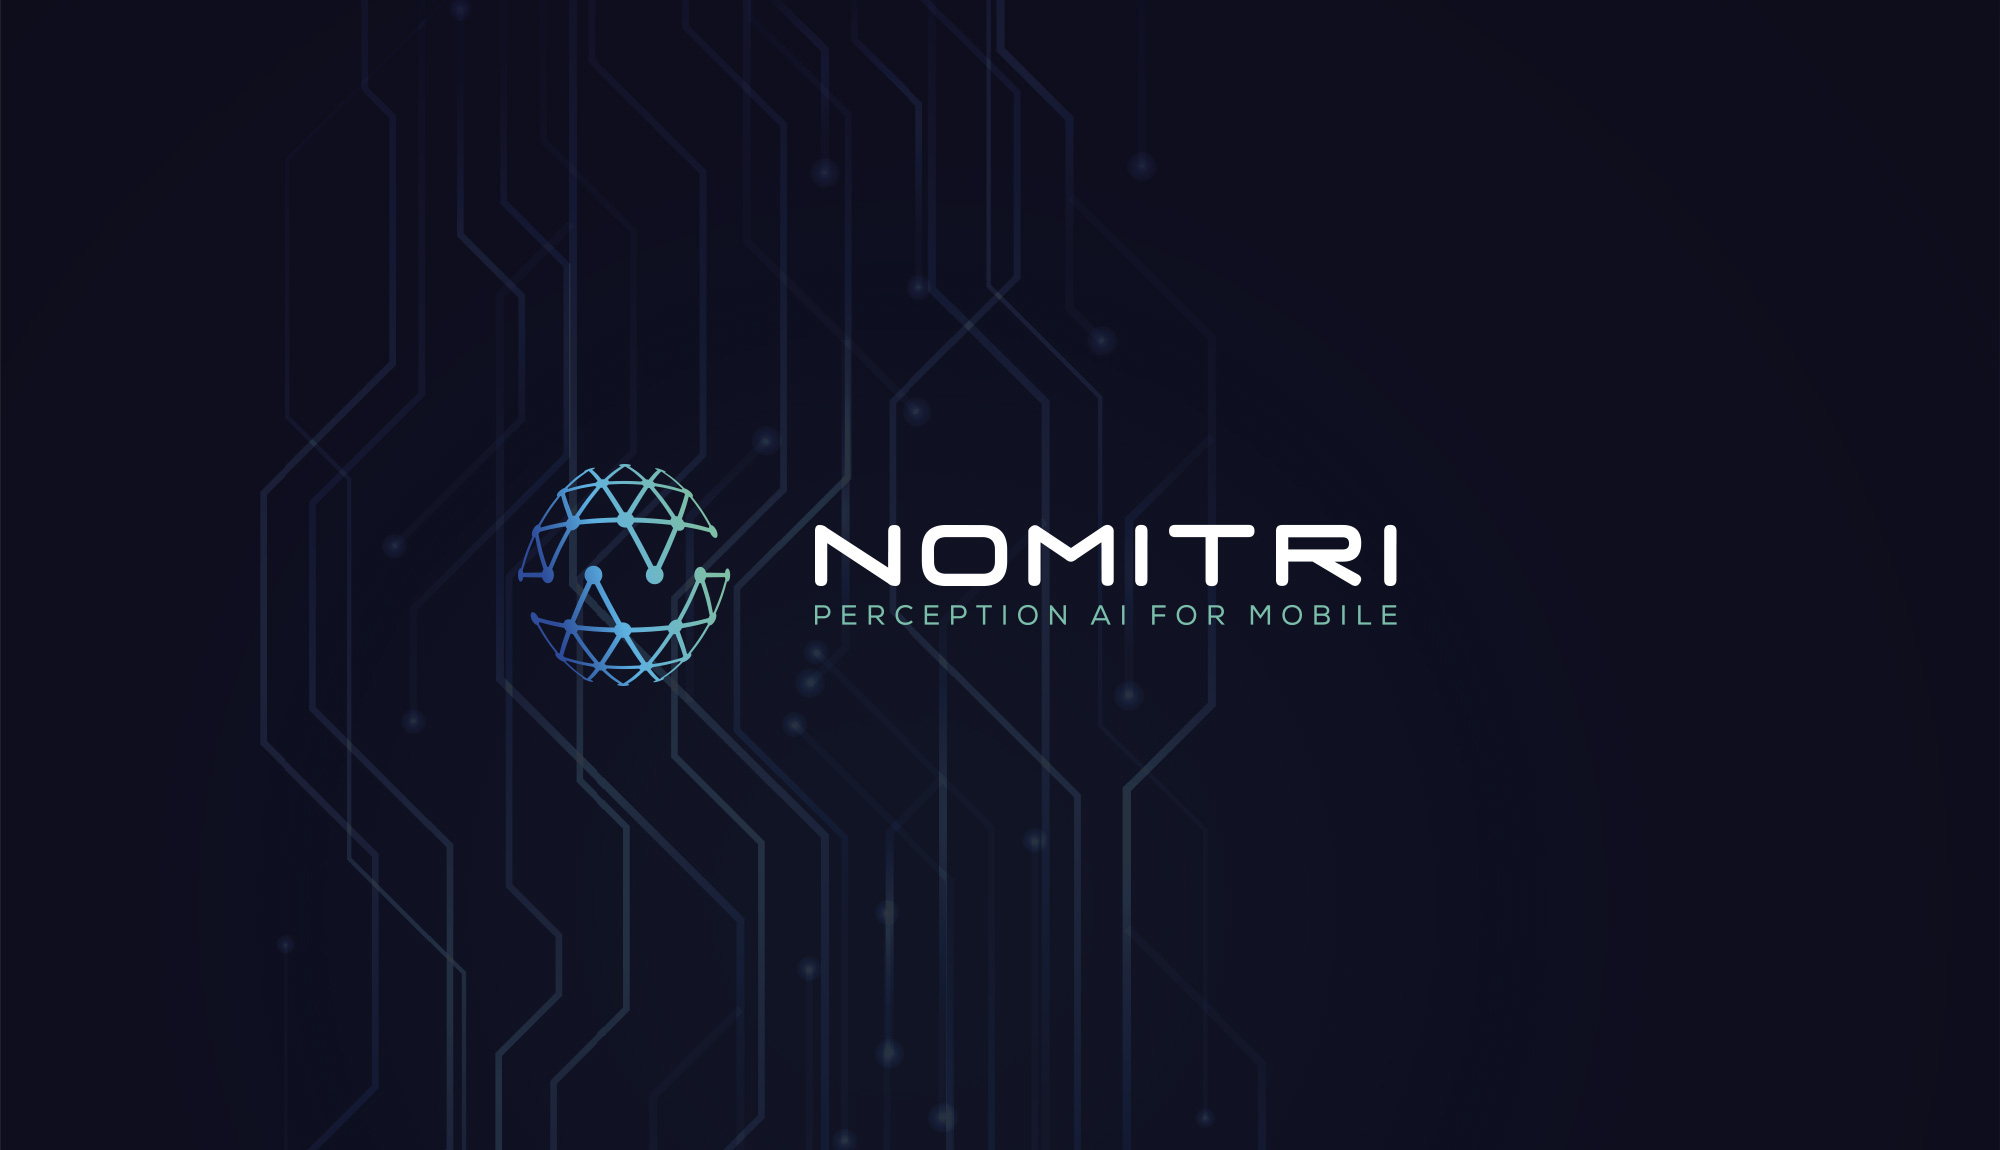 Nomitri-Background